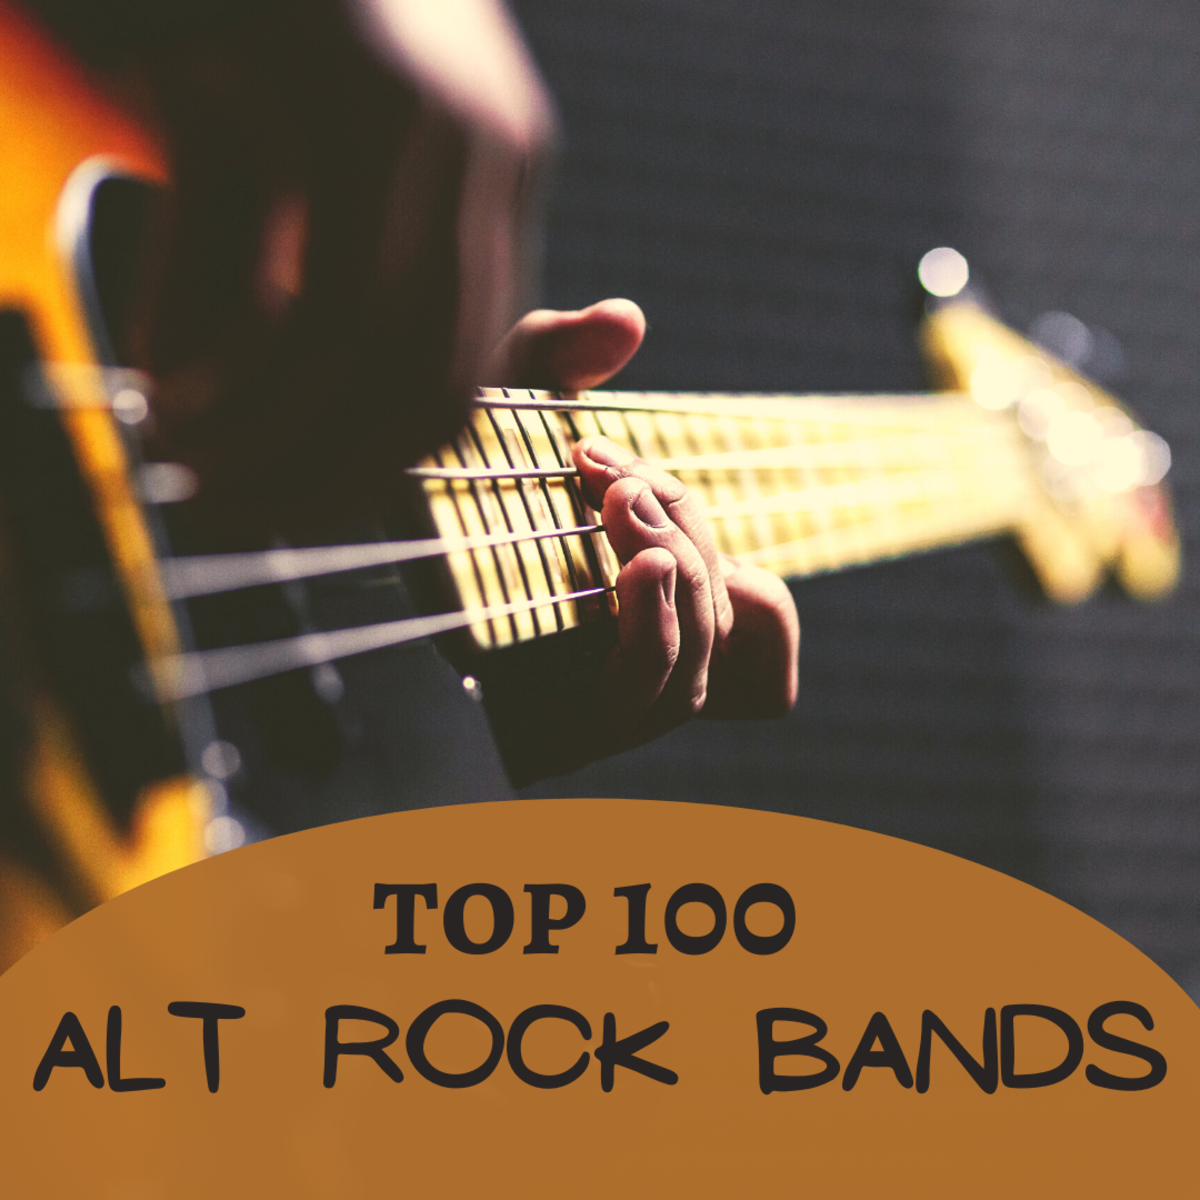 What are the top 100 alternative rock bands? Find out here!